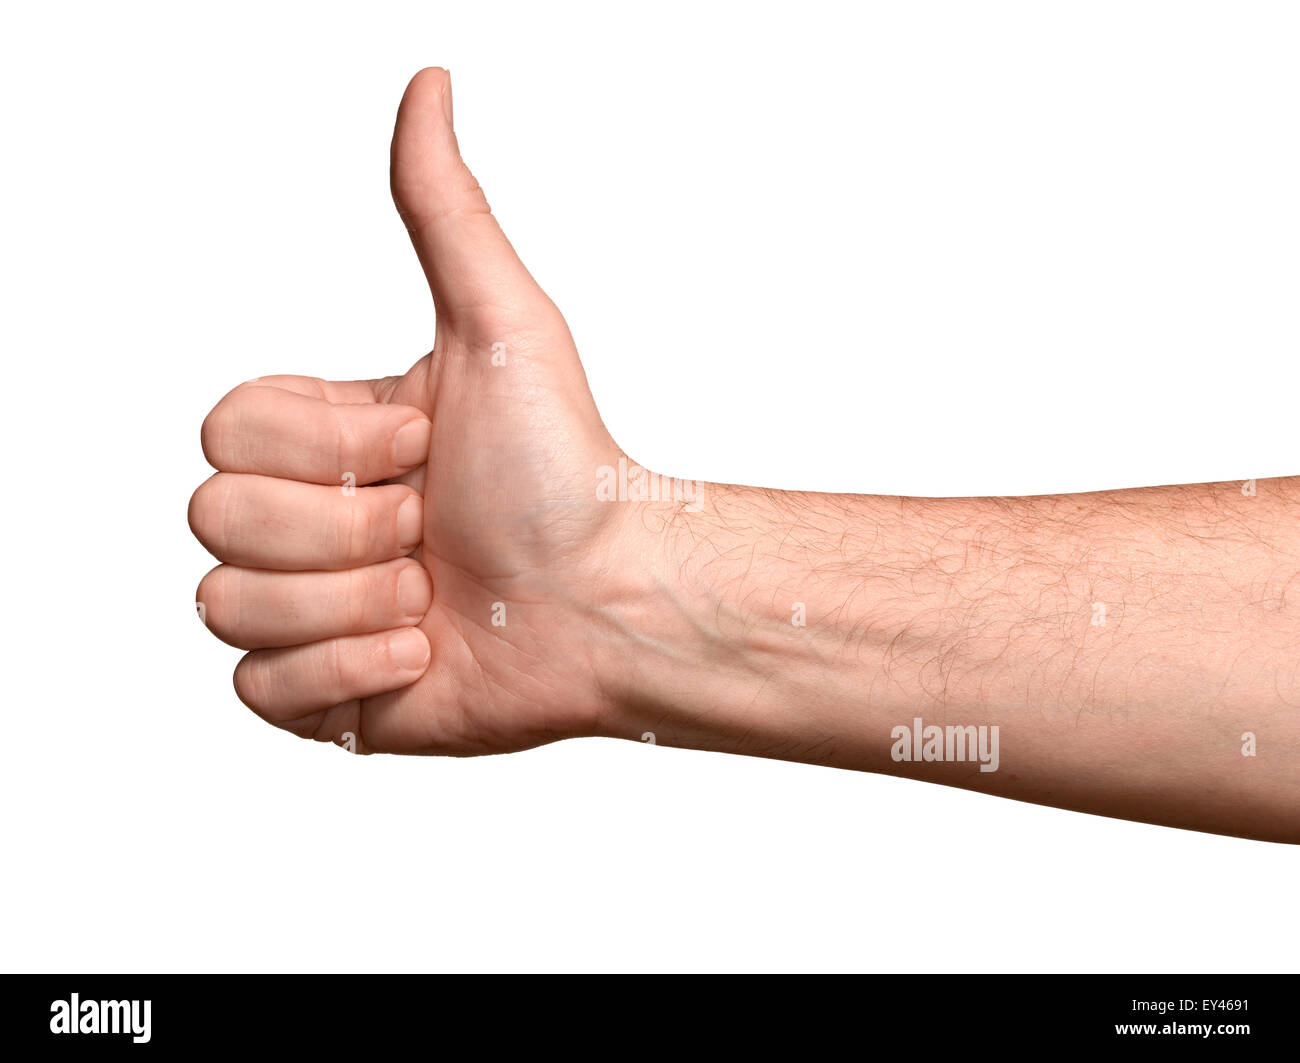 a male hand in